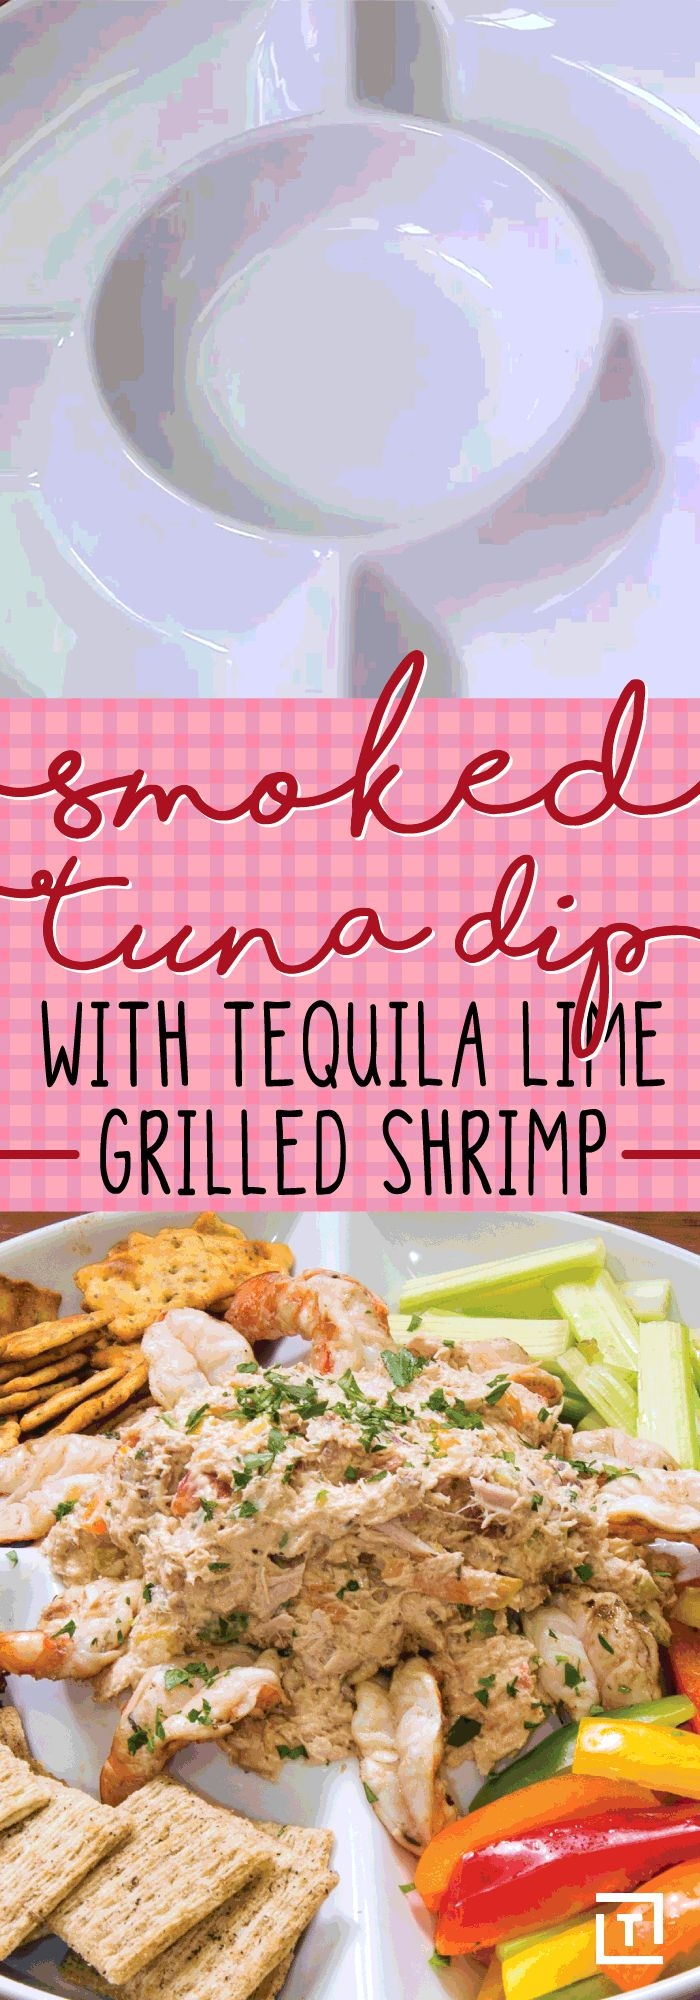 Chips and dip are so old news. Make this smoked tuna dip with tequila lime grilled shrimp instead, courtesy of SmokyRibsBBQ. Mix up some grilled Cajun tuna steaks with lemon juice, cream cheese, parsley, red onion, and more. Serve it alongside shrimp marinated in a tequila, lime, and cumin for the ultimate dipping platter from the sea.